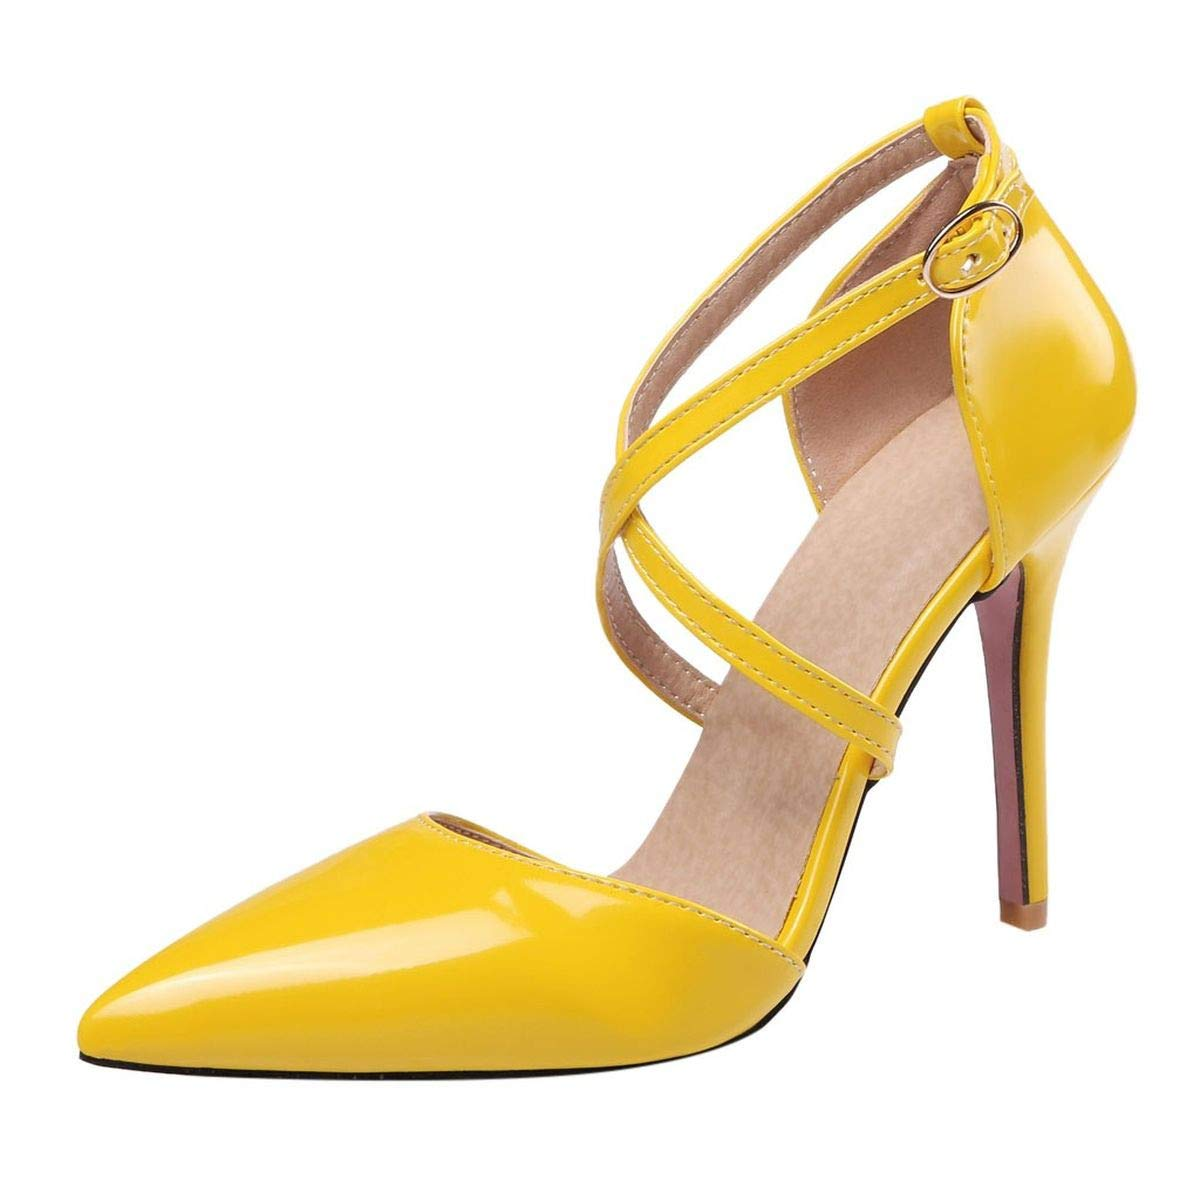 Women's Pointed Toe High Heel Cross Ankle Strap D'Orsay Leather Dress Pumps Wedding Bridal Evening Party Dress Shoes (Yellow, 6.5) by Meiliwanju